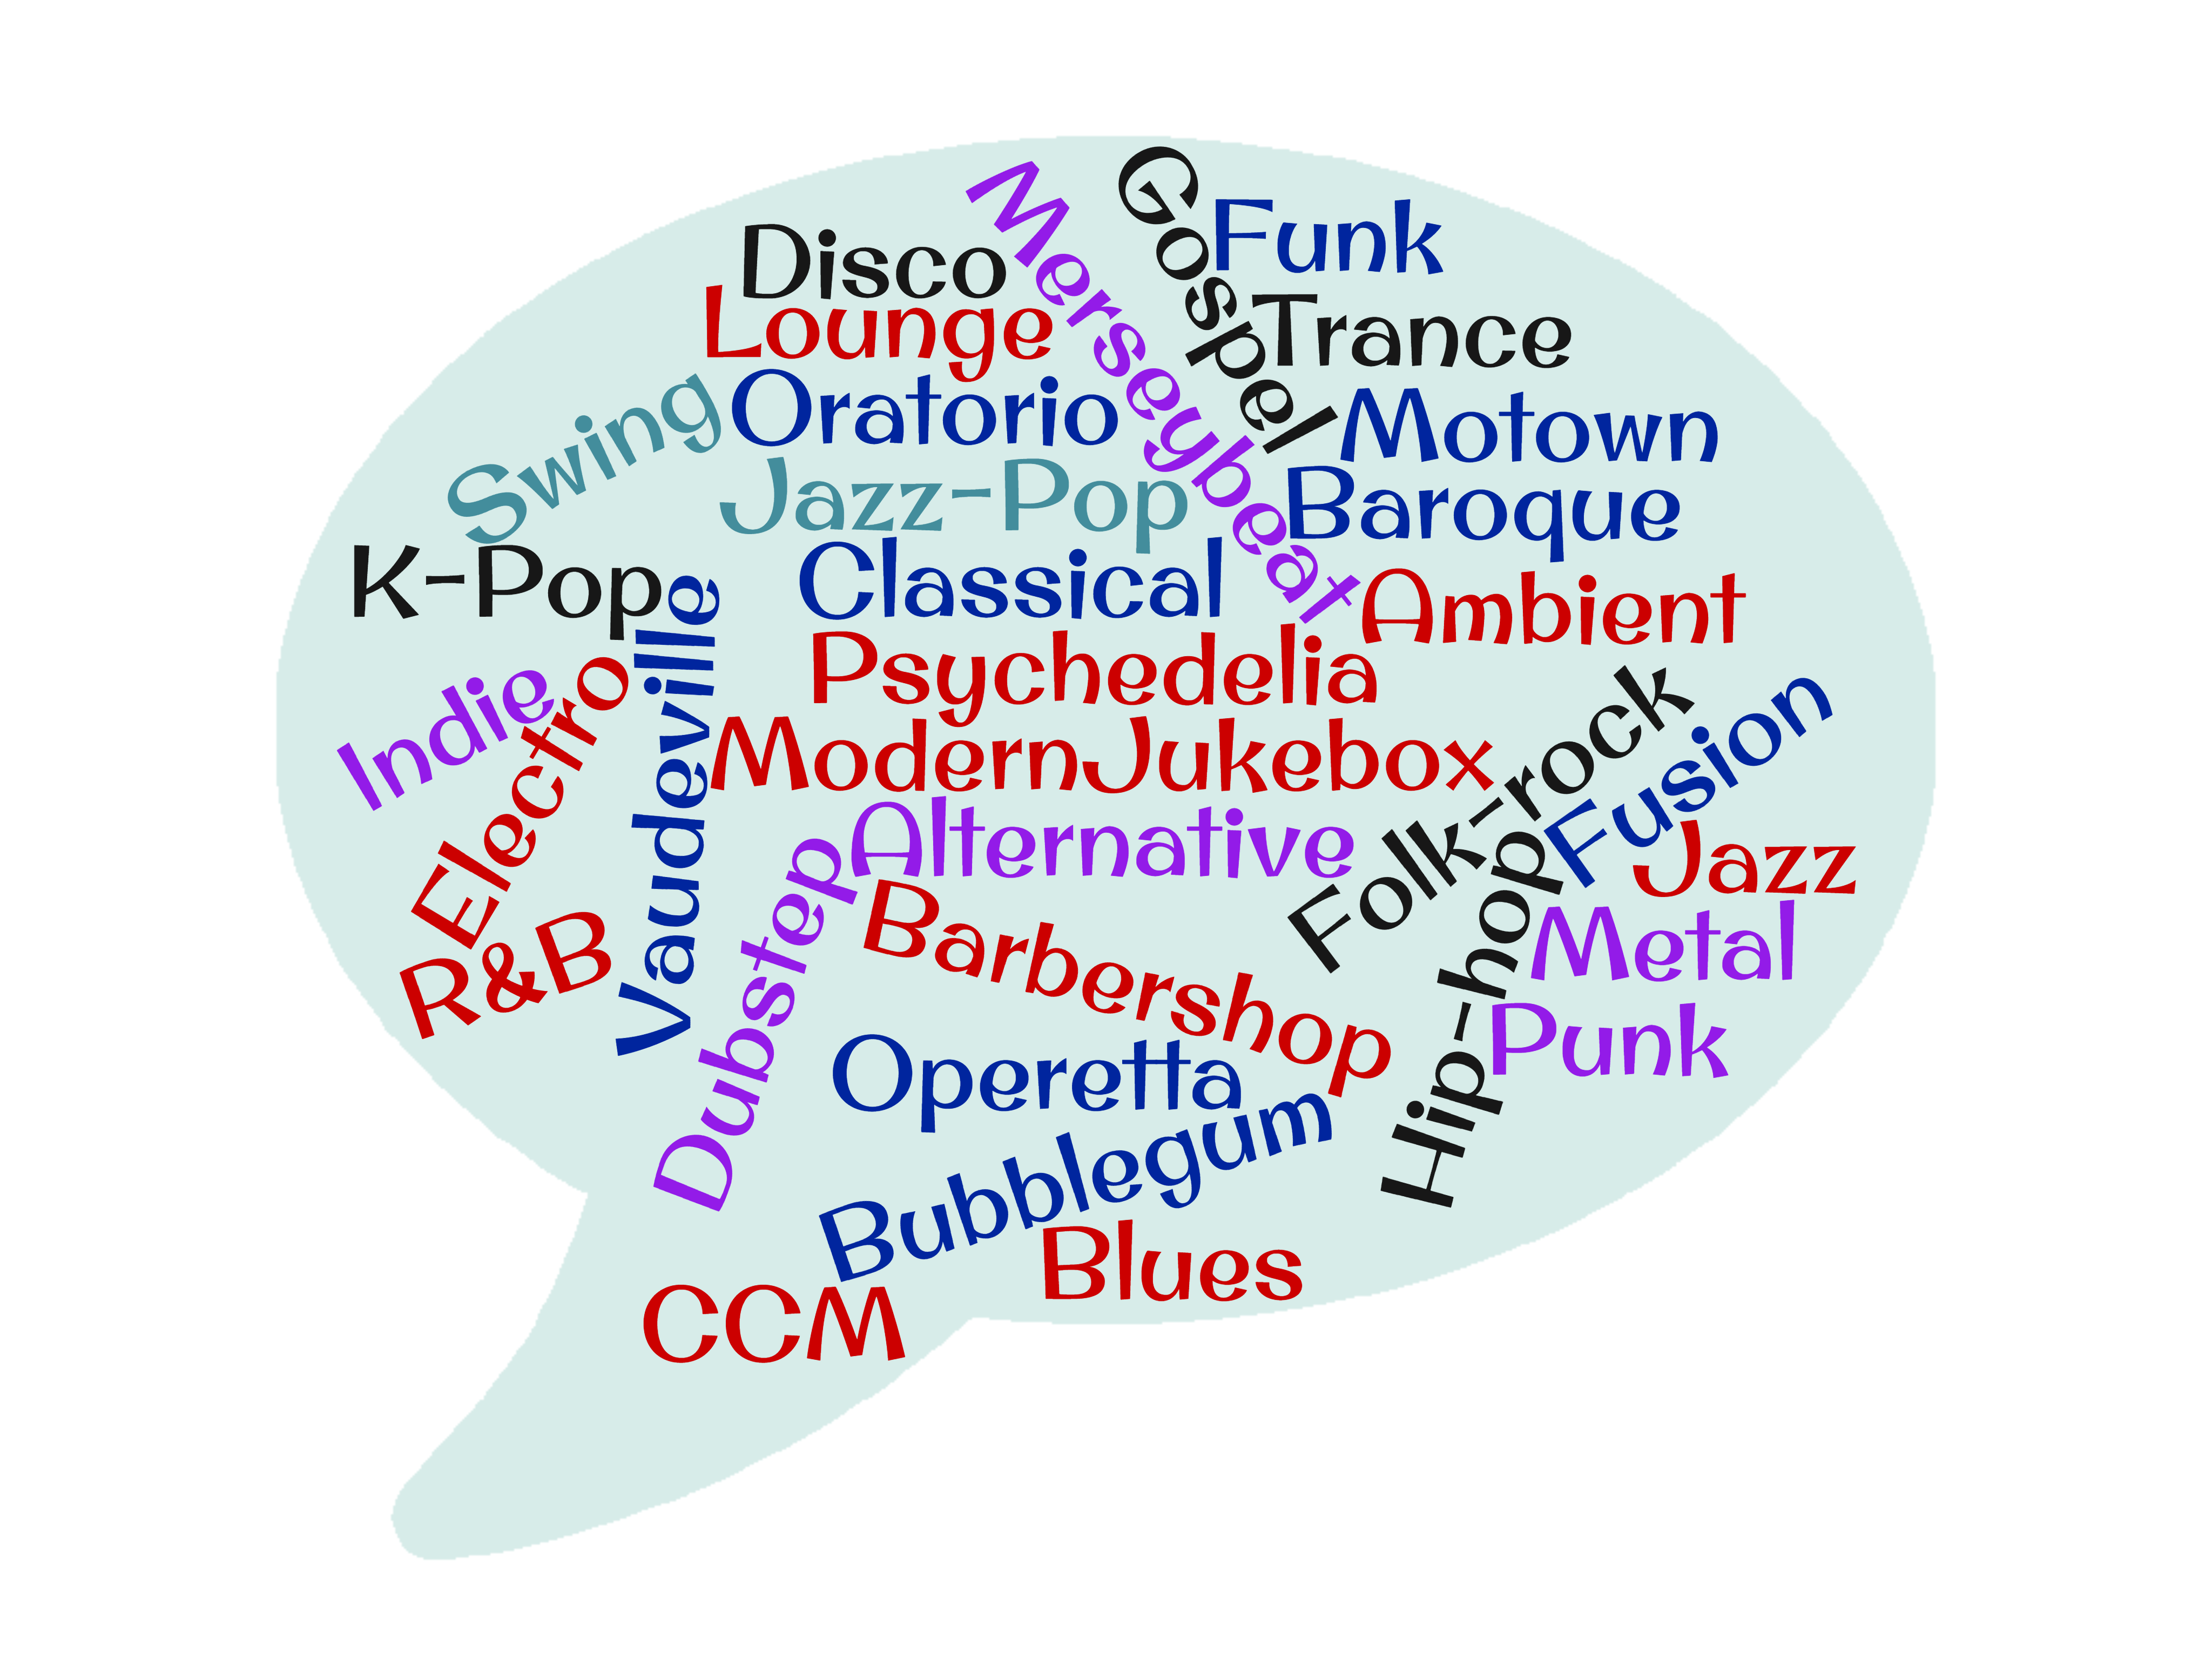 A wordcloud of vocal music genres